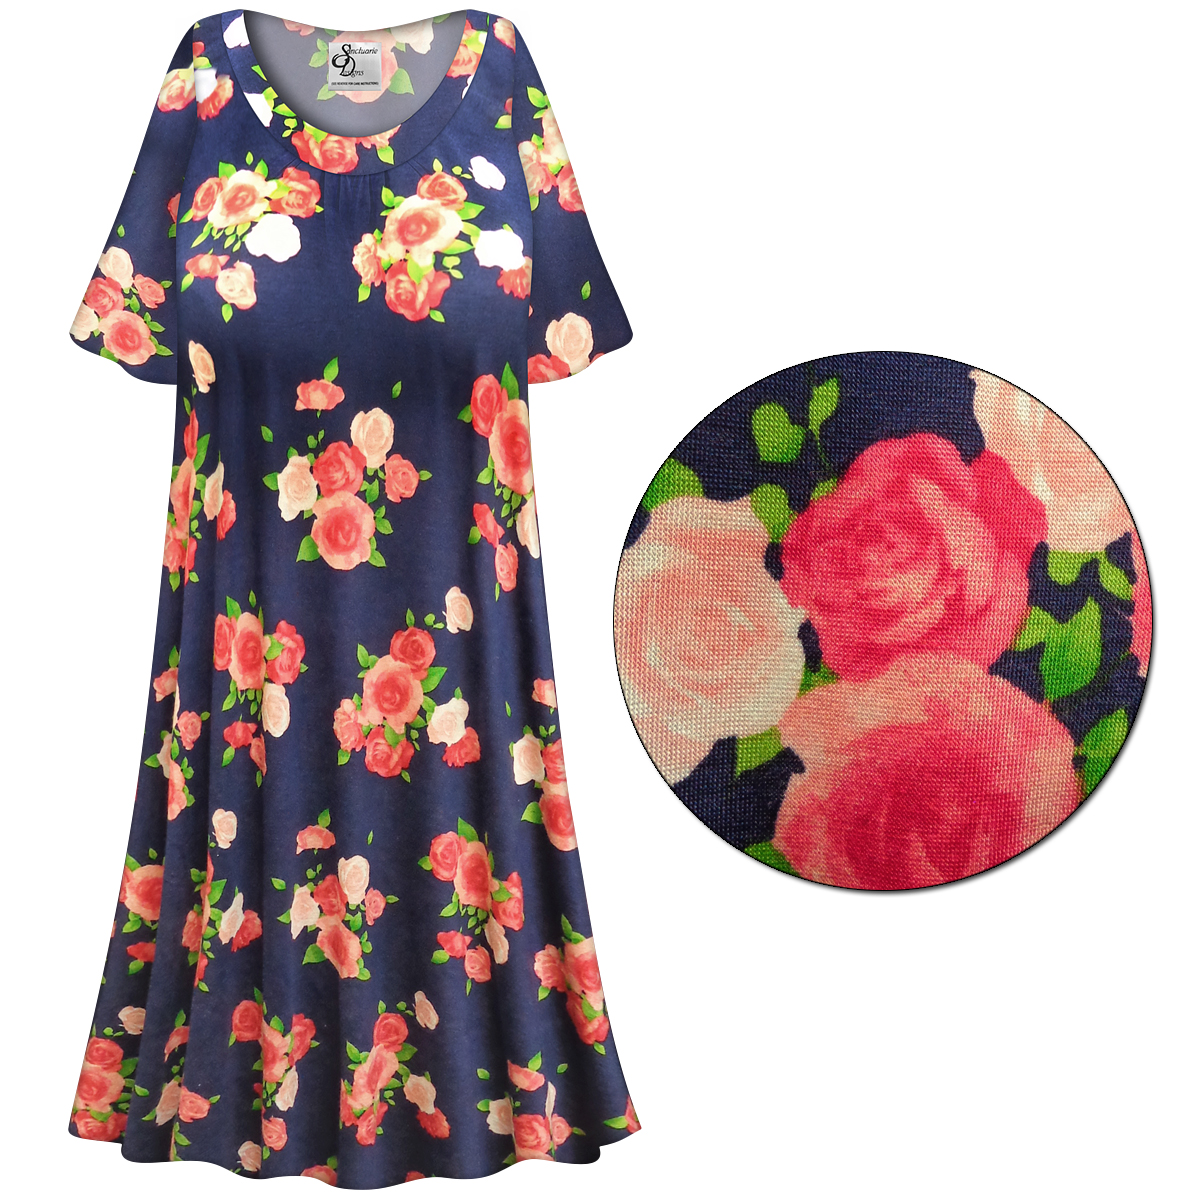 SOLD OUT! SALE! Customizable Roses Print Plus Size & SuperSize ...